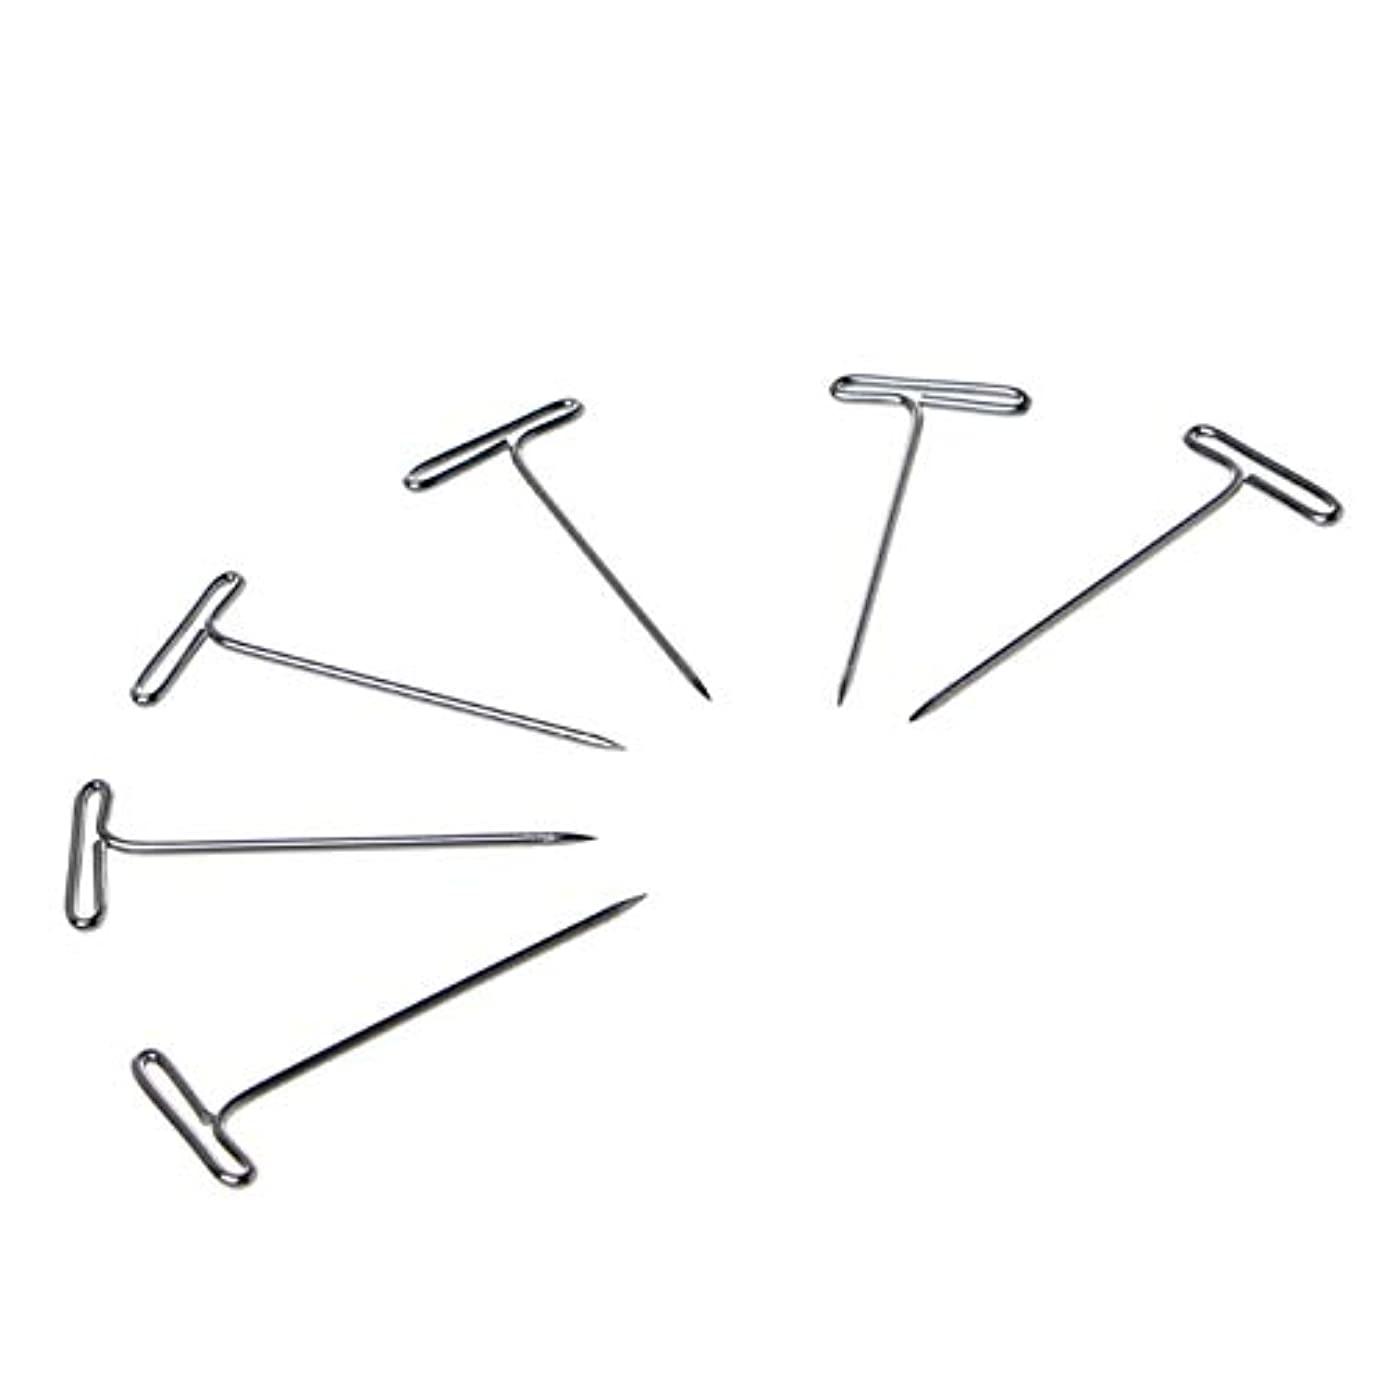 New-Sky-View - 100 Pcs T Pins Needle For Wig On Foam Head Style Head Sewing Hair Salon Tools